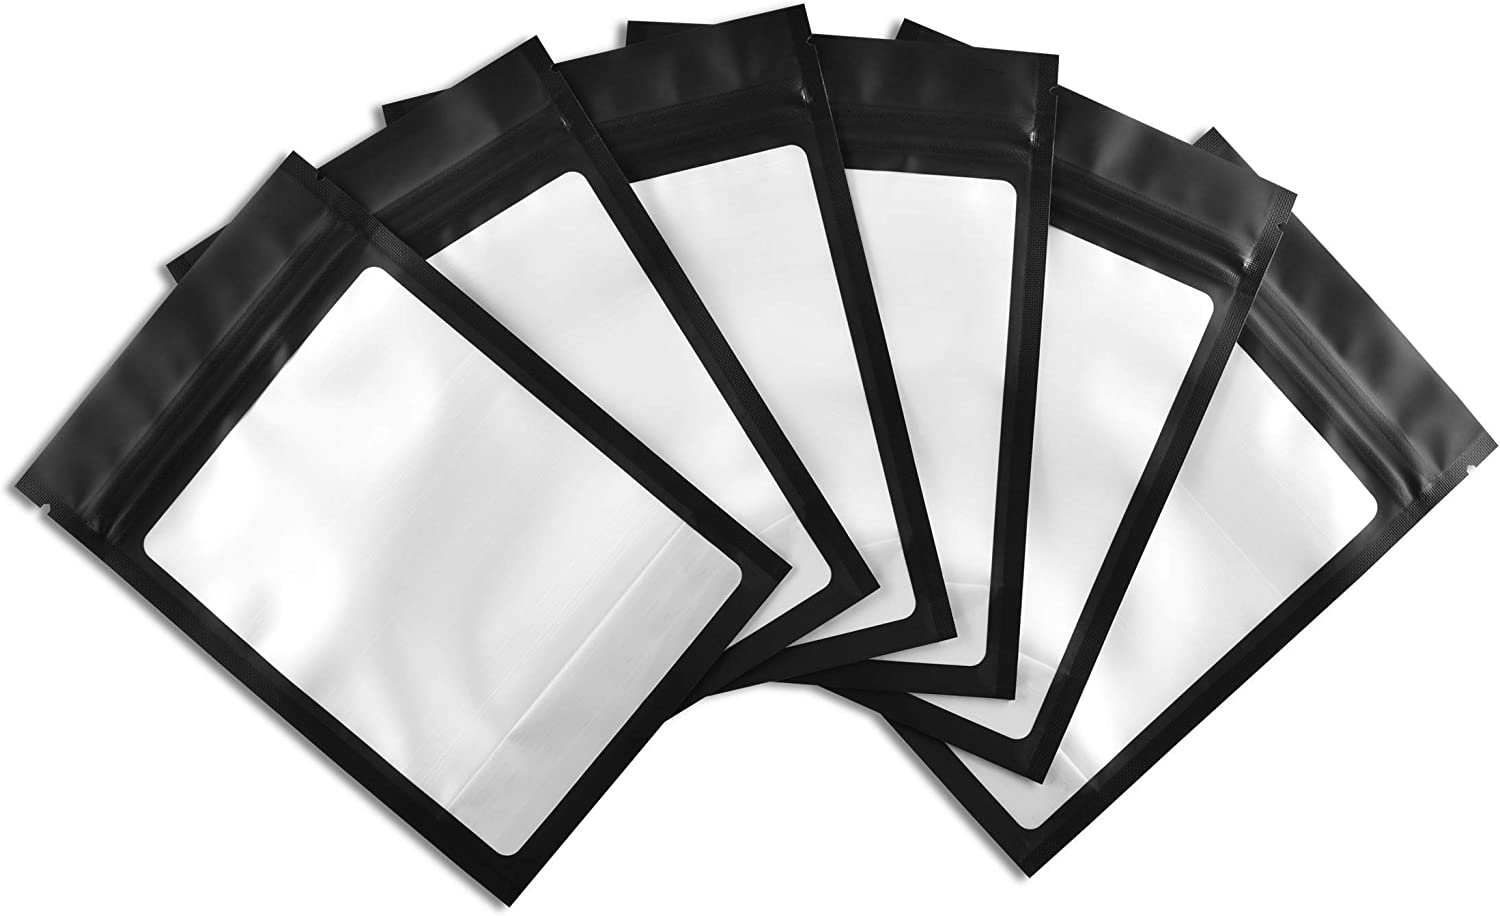 COLSEN 4 x 6 Inches 100 Pack Smell Proof Mylar Resealable Foil Pouch Bags - Food Safe Airtight Ziplock Matte Black with Clear Window (4X6 Inches (100 Pack))